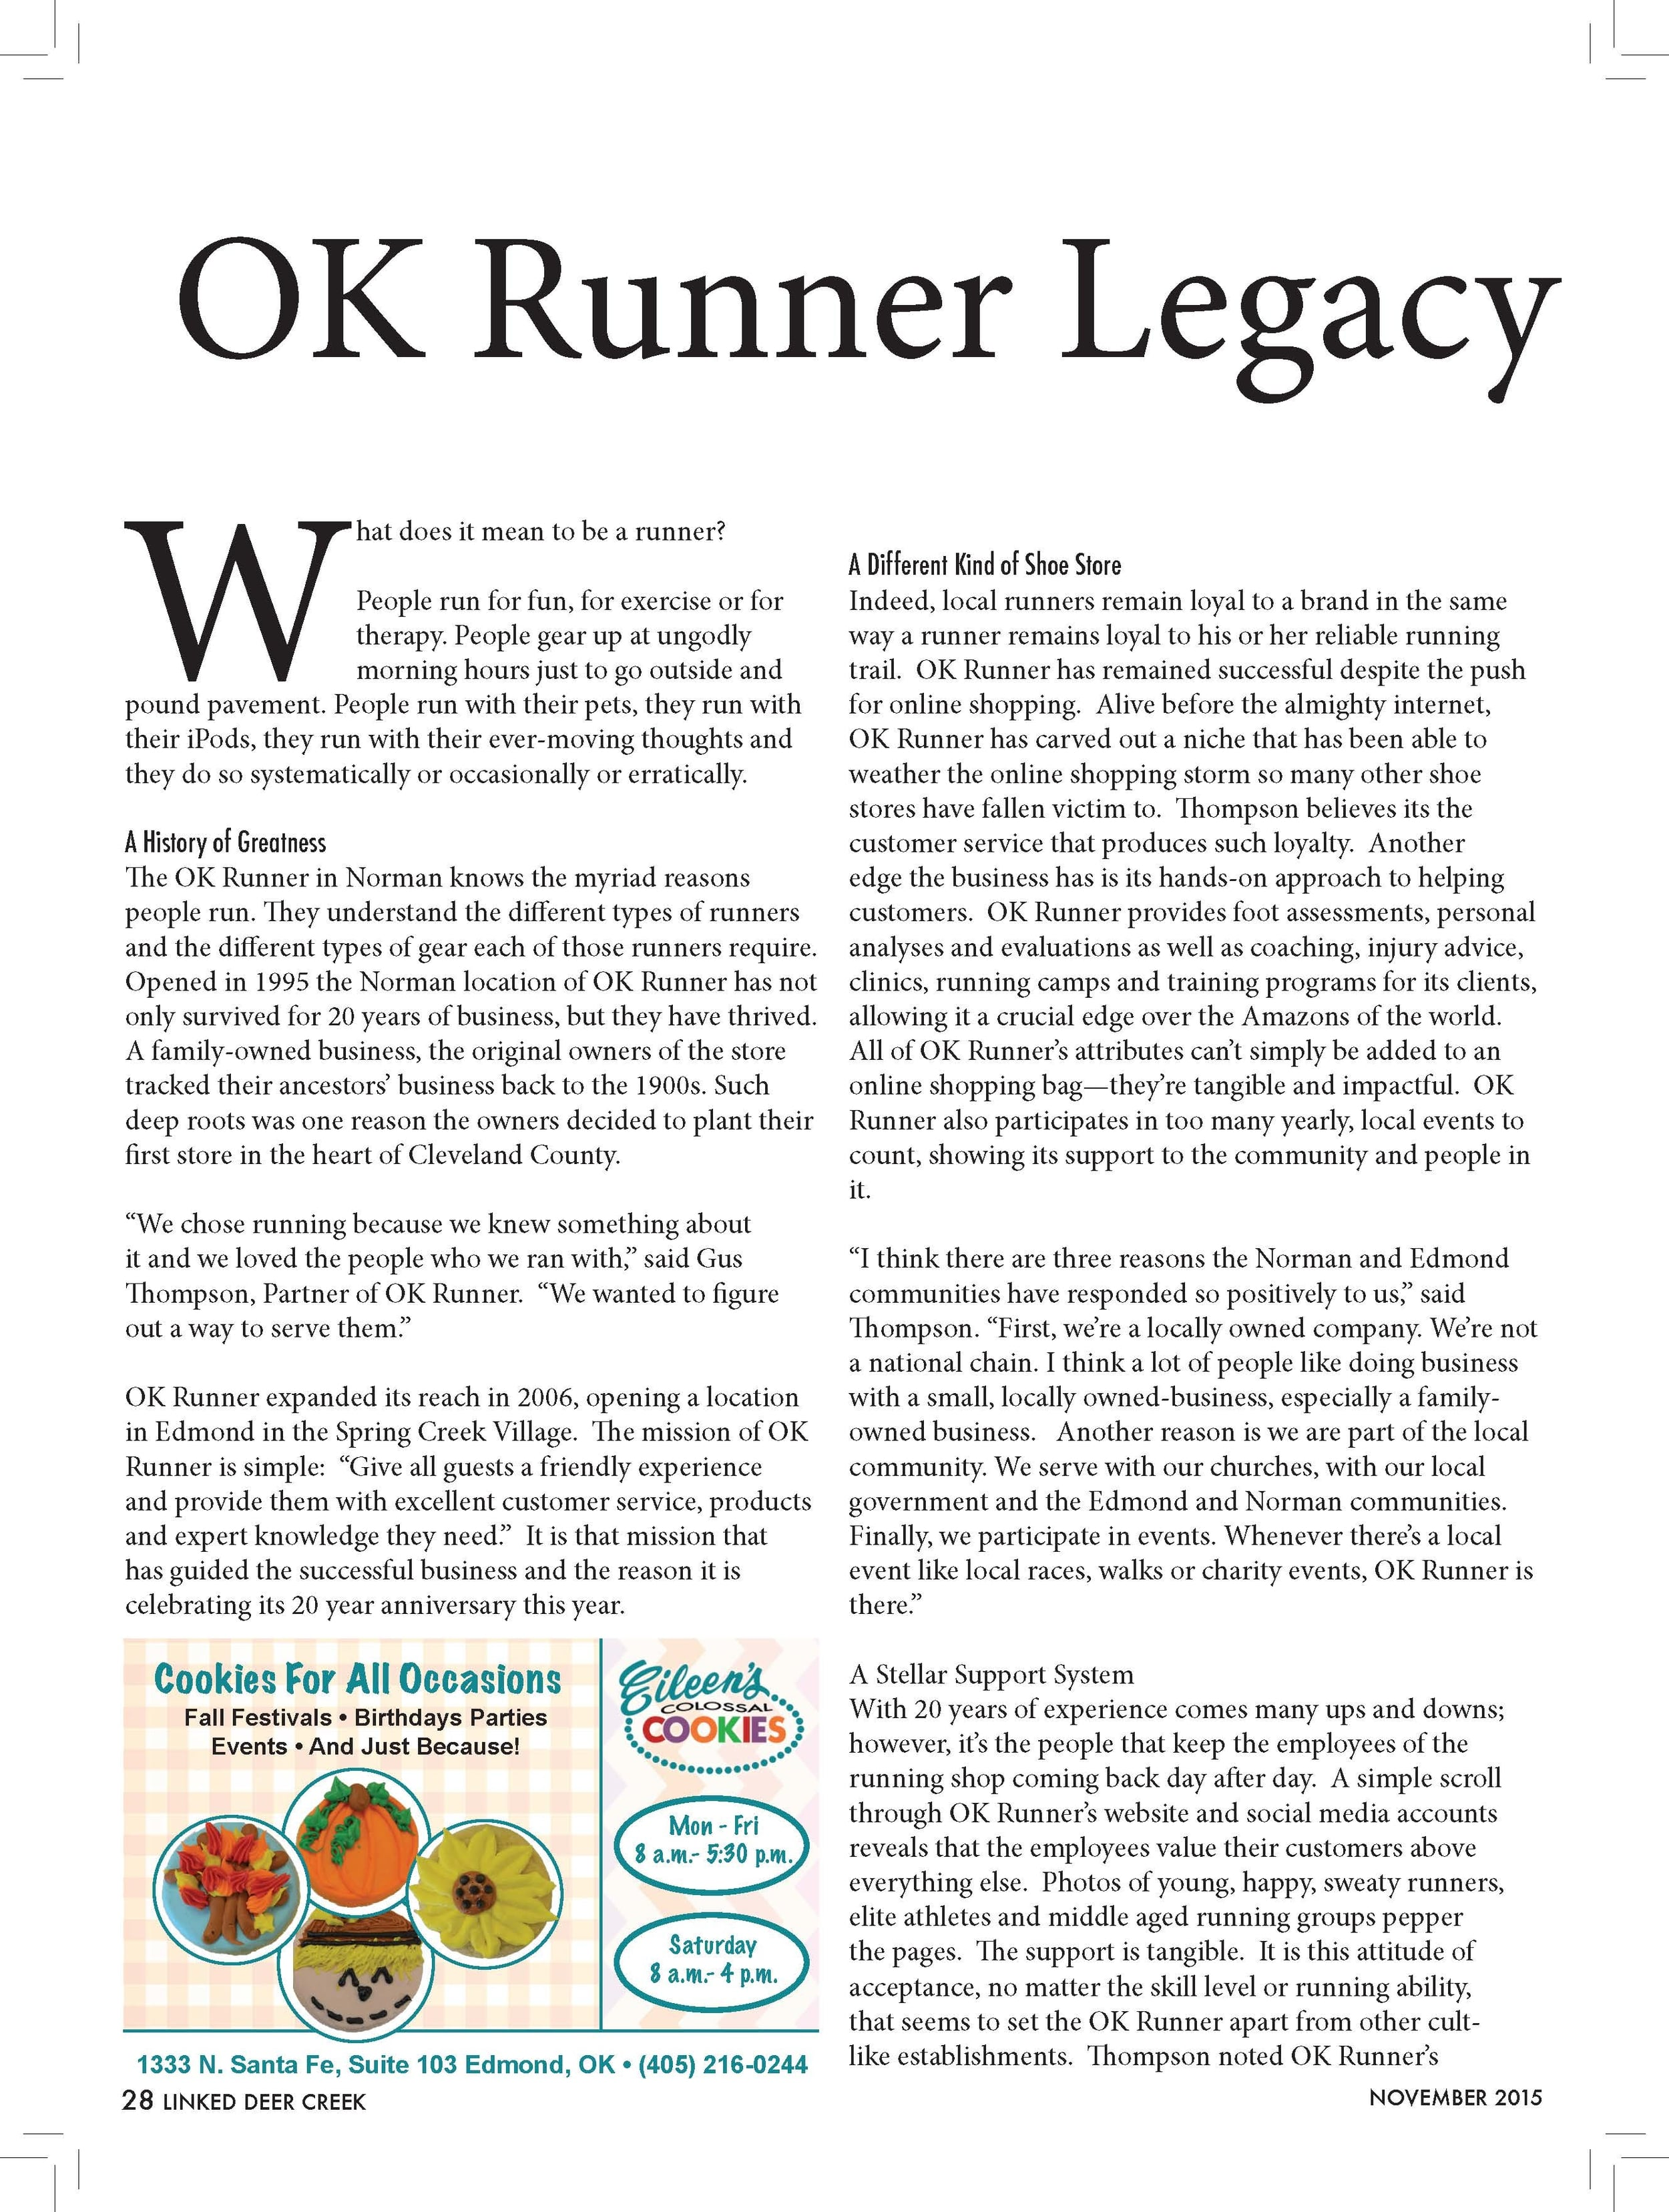 """OK Runner Legacy  What does it mean to be a runner?  People run for fun, for exercise or for  therapy. People gear up at ungodly  morning hours just to go outside and  pound pavement. People run with their pets, they run with  their iPods, they run with their ever-moving thoughts and  they do so systematically or occasionally or erratically.  A History of Greatness  The OK Runner in Norman knows the myriad reasons  people run. They understand the different types of runners  and the different types of gear each of those runners require.  Opened in 1995 the Norman location of OK Runner has not  only survived for 20 years of business, but they have thrived.  A family-owned business, the original owners of the store  tracked their ancestors' business back to the 1900s. Such  deep roots was one reason the owners decided to plant their  first store in the heart of Cleveland County.  """"We chose running because we knew something about  it and we loved the people who we ran with,"""" said Gus  Thompson, Partner of OK Runner. """"We wanted to figure  out a way to serve them.""""  OK Runner expanded its reach in 2006, opening a location  in Edmond in the Spring Creek Village. The mission of OK  Runner is simple: """"Give all guests a friendly experience  and provide them with excellent customer service, products  and expert knowledge they need."""" It is that mission that  has guided the successful business and the reason it is  celebrating its 20 year anniversary this year.  A Different Kind of Shoe Store  Indeed, local runners remain loyal to a brand in the same  way a runner remains loyal to his or her reliable running  trail. OK Runner has remained successful despite the push  for online shopping. Alive before the almighty internet,  OK Runner has carved out a niche that has been able to  weather the online shopping storm so many other shoe  stores have fallen victim to. Thompson believes its the  customer service that produces such loyalty. Another  edge the business has is its hands-on """